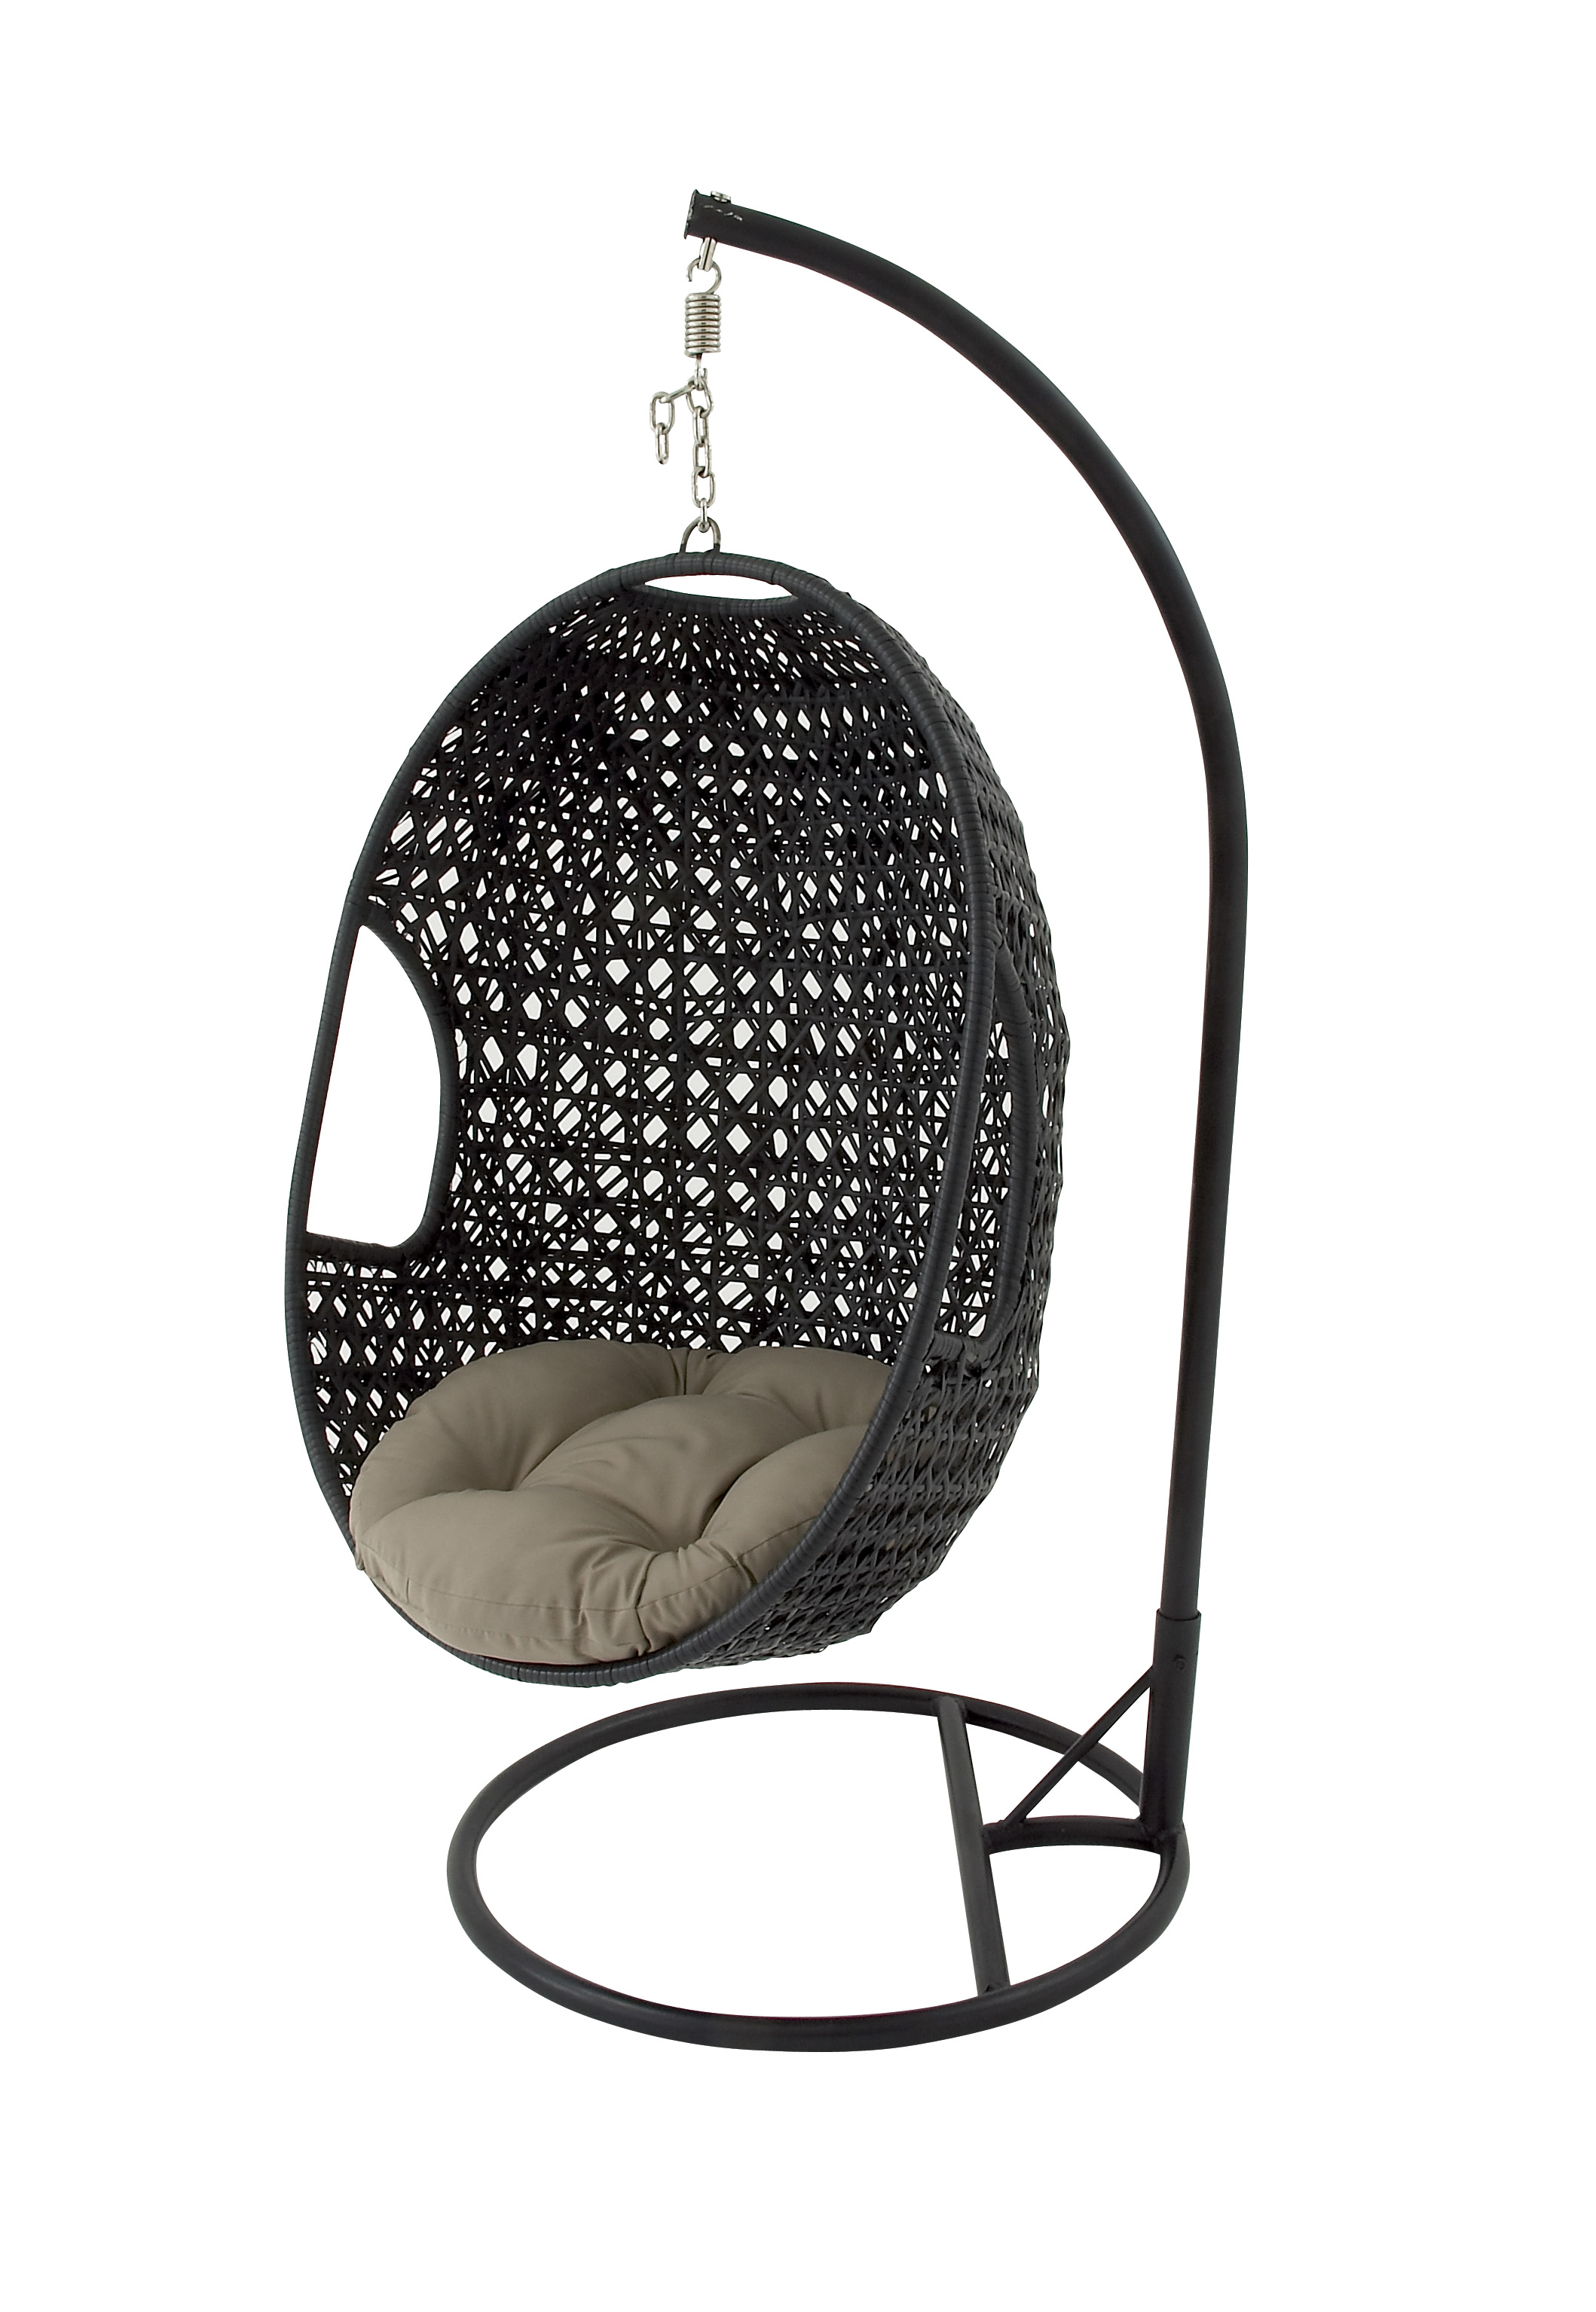 Outstanding Decmode Modern 80 X 37 Inch Black Resin Wicker Rattan Hanging Egg Chair With Cushion And Stand Ocoug Best Dining Table And Chair Ideas Images Ocougorg